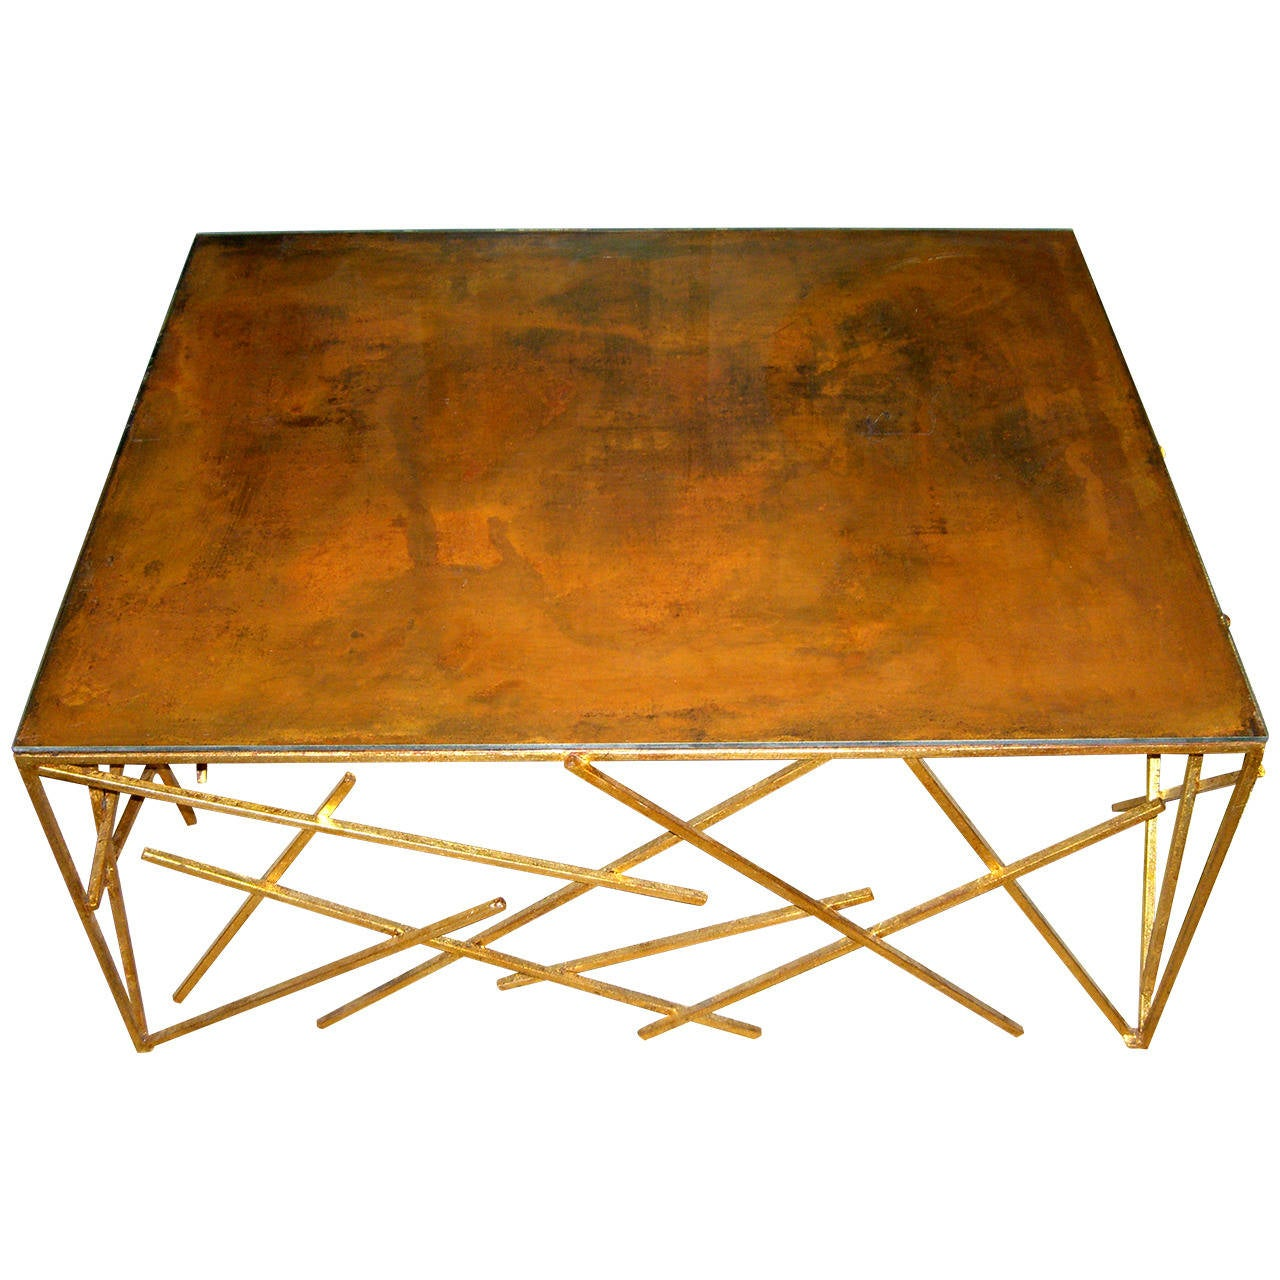 Custom Metal Criss-Cross Design Cocktail Table For Sale